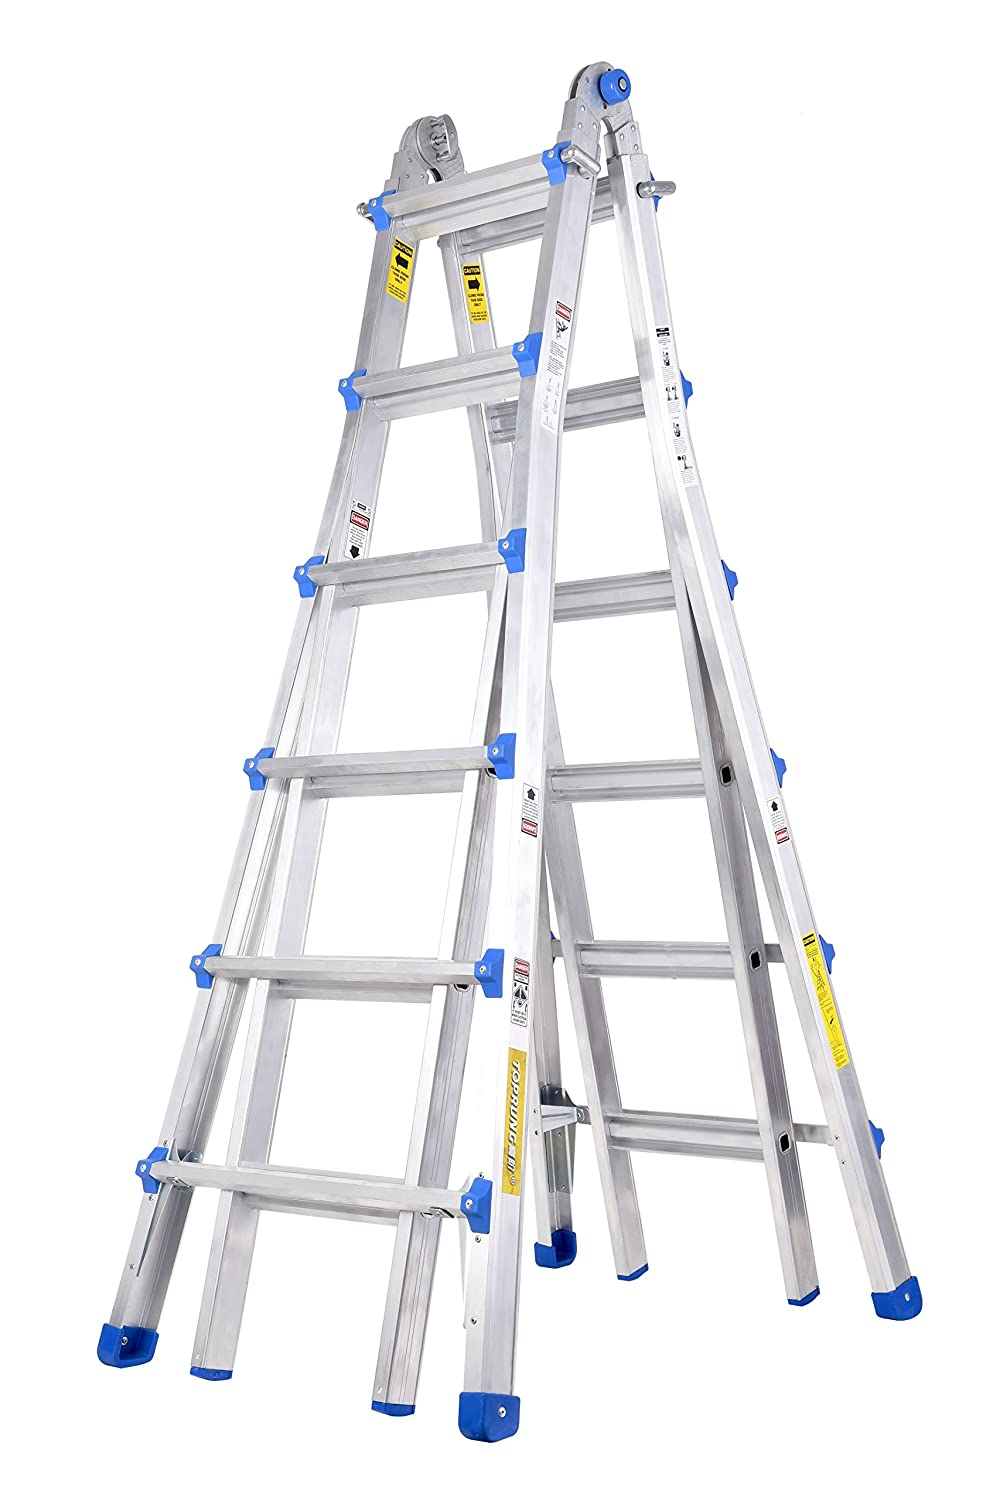 Toprung Model 26 Ft Aluminum Extension Multi Purpose Ladder With 300 Lb Load Capacity Type 1a Duty Rating Amazon Com